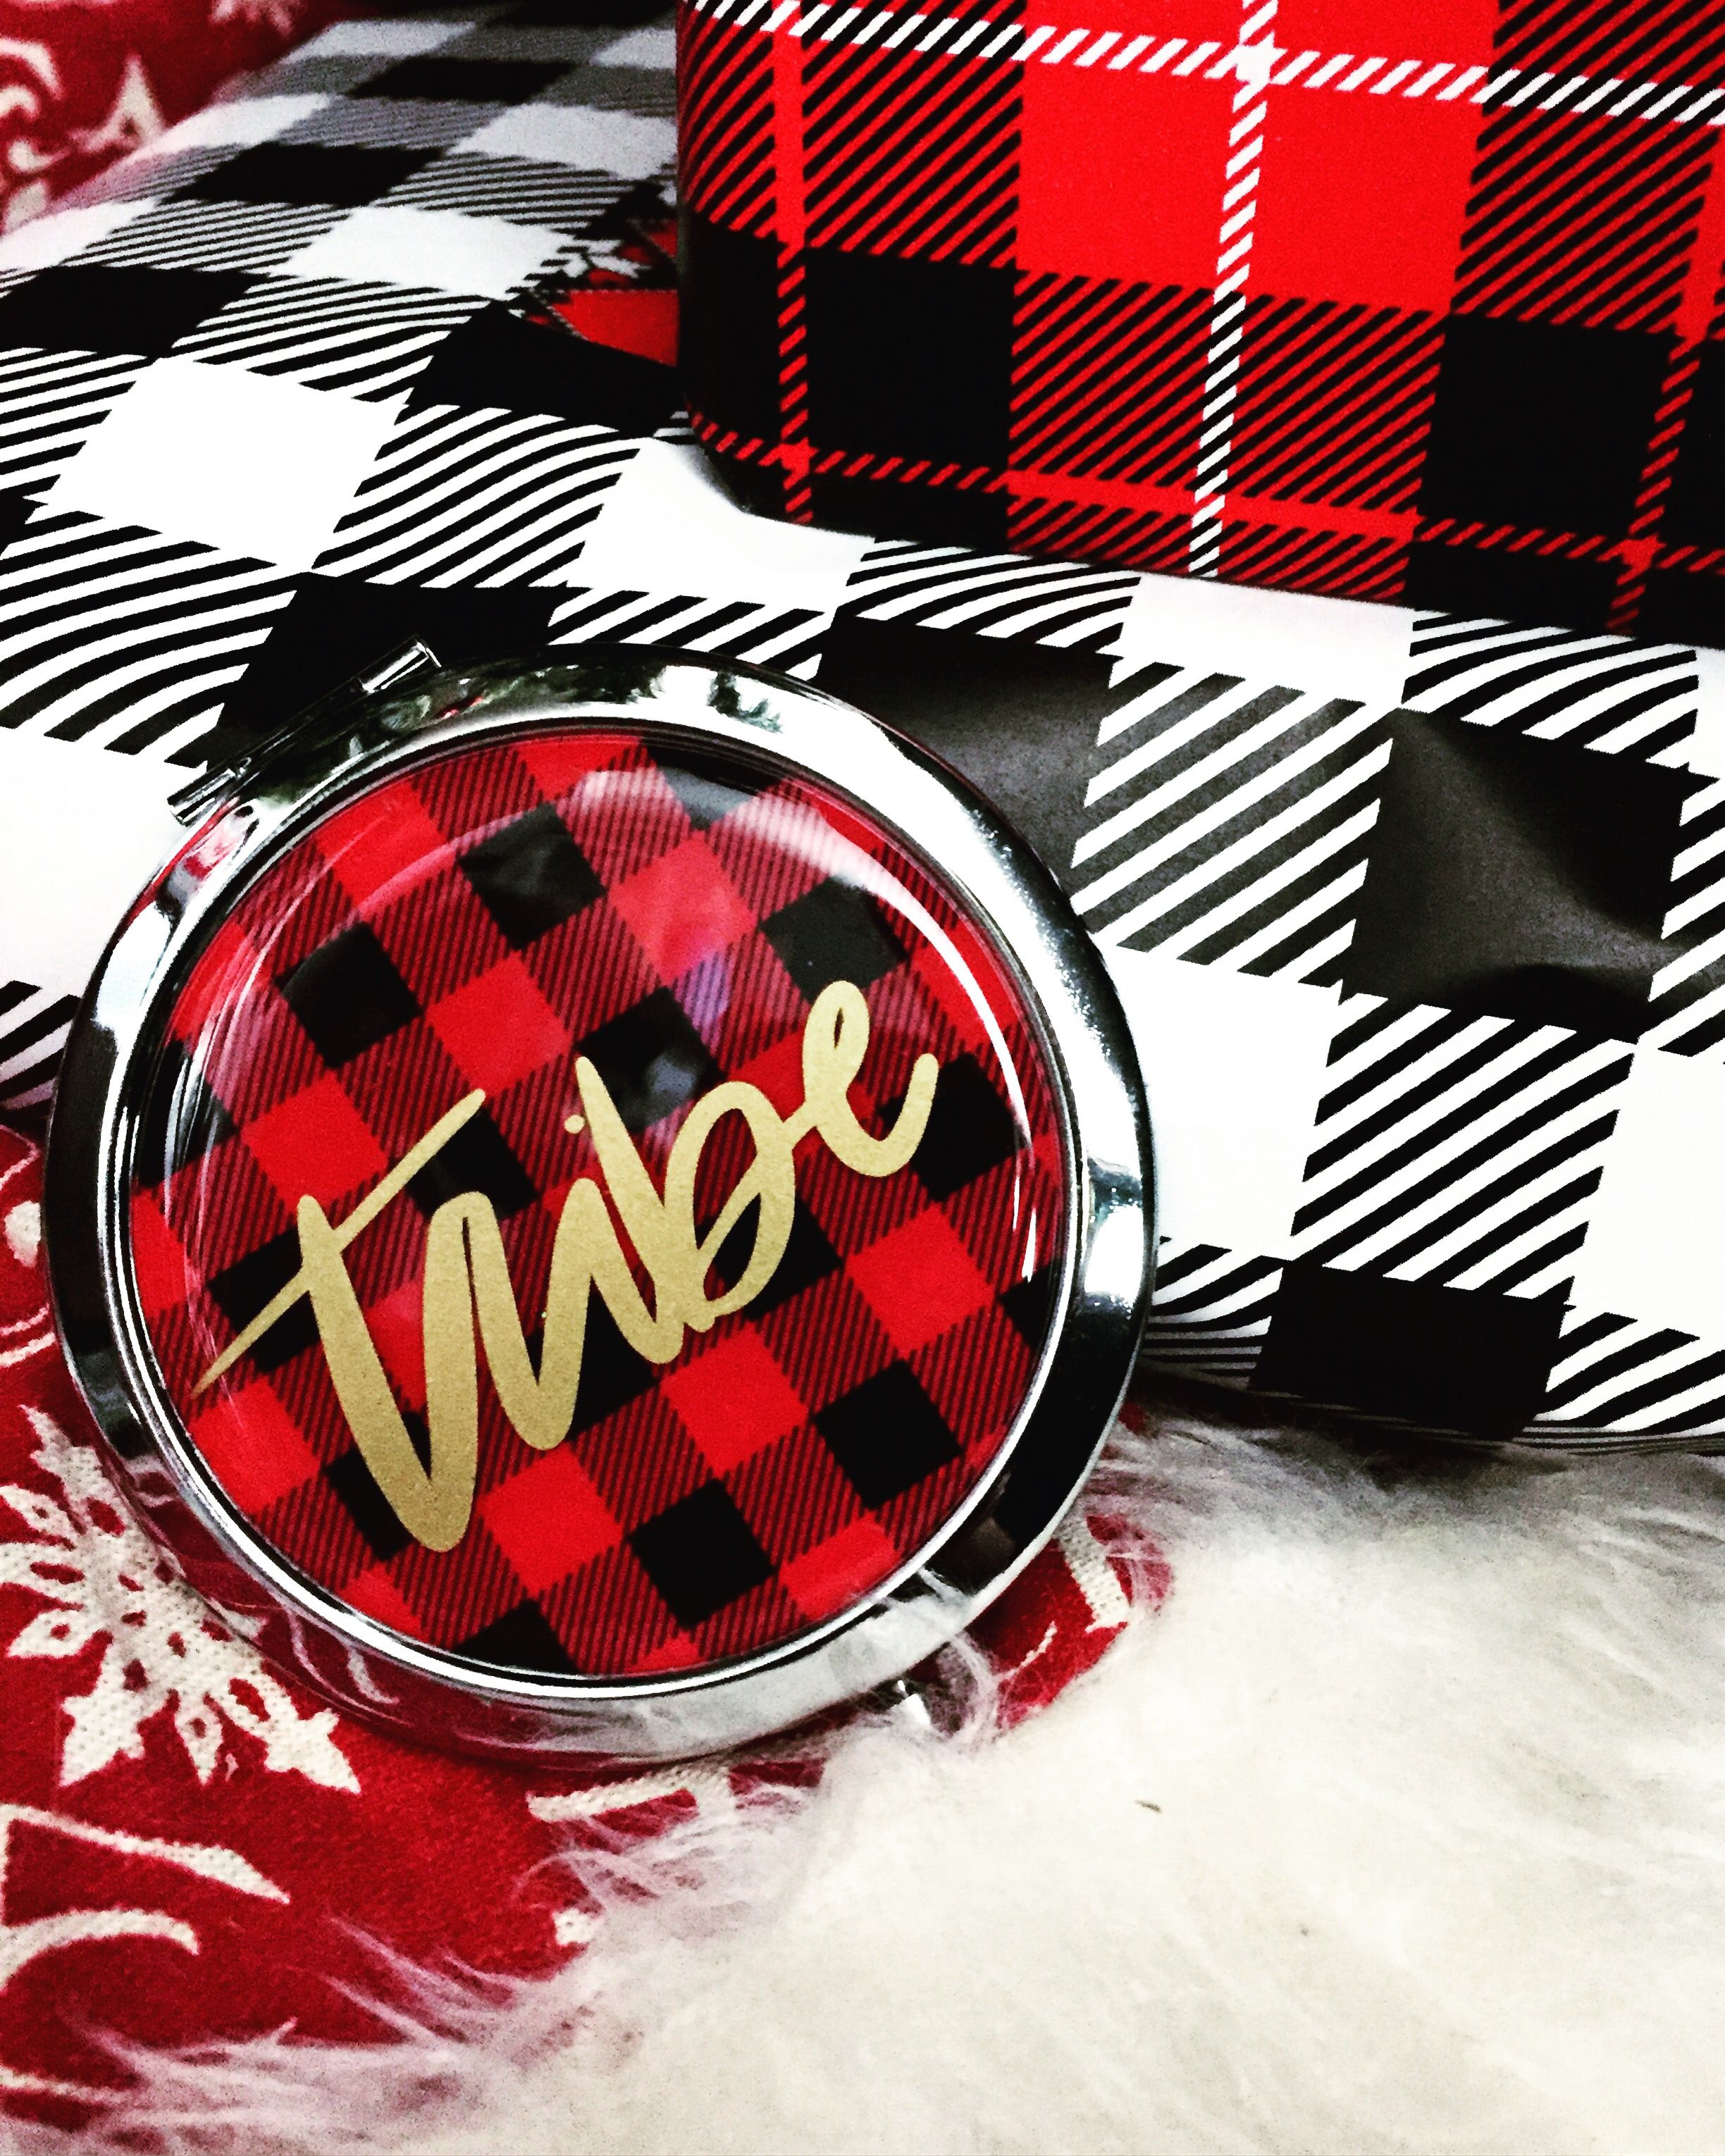 Buffalo Plaid Cosmetic Pocket Mirror Tribe Calligraphy Decal In Gold Vinyl Available In Red Or White Bride Bachel Gold Vinyl Pocket Mirror Lettering Design